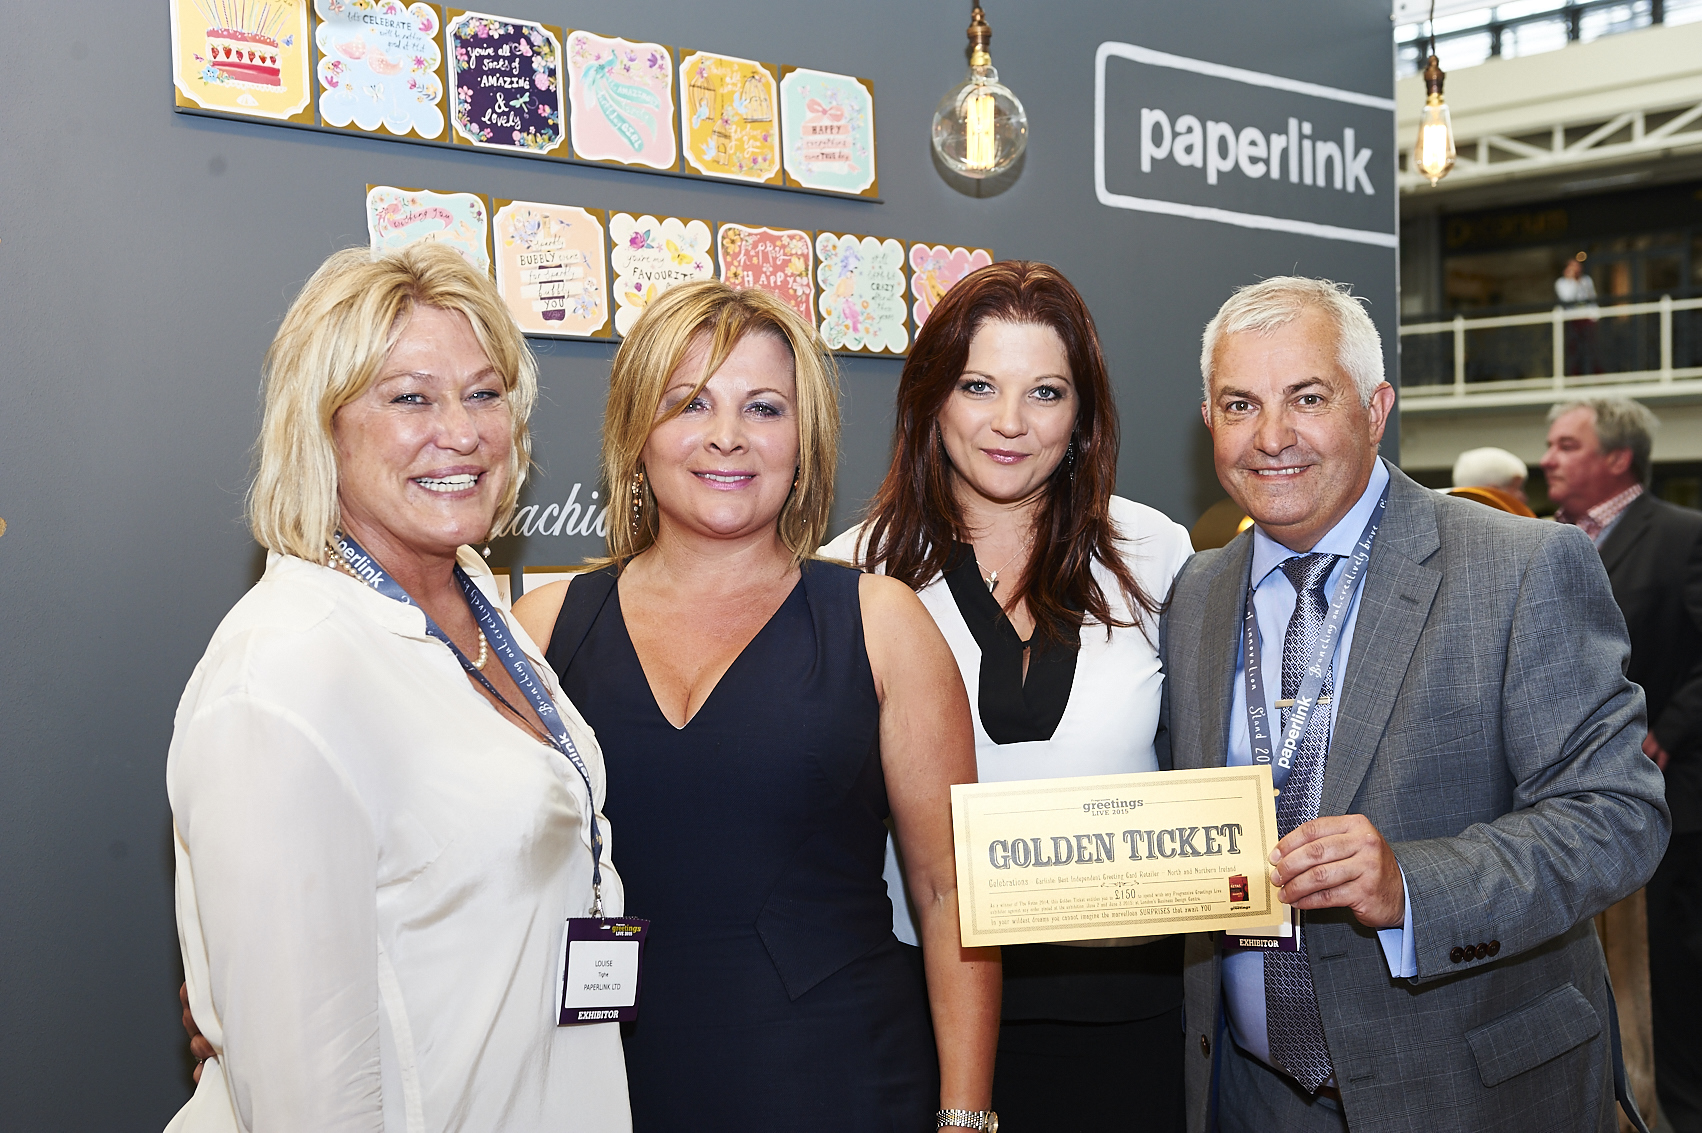 Above: (left-right) Louise Tighe, ceo of Paperlink with retail customers Tanya Haadrikman and Sonya Haadrikman-Sibbald with Bill Greeno on the publisher's stand at PG Live.